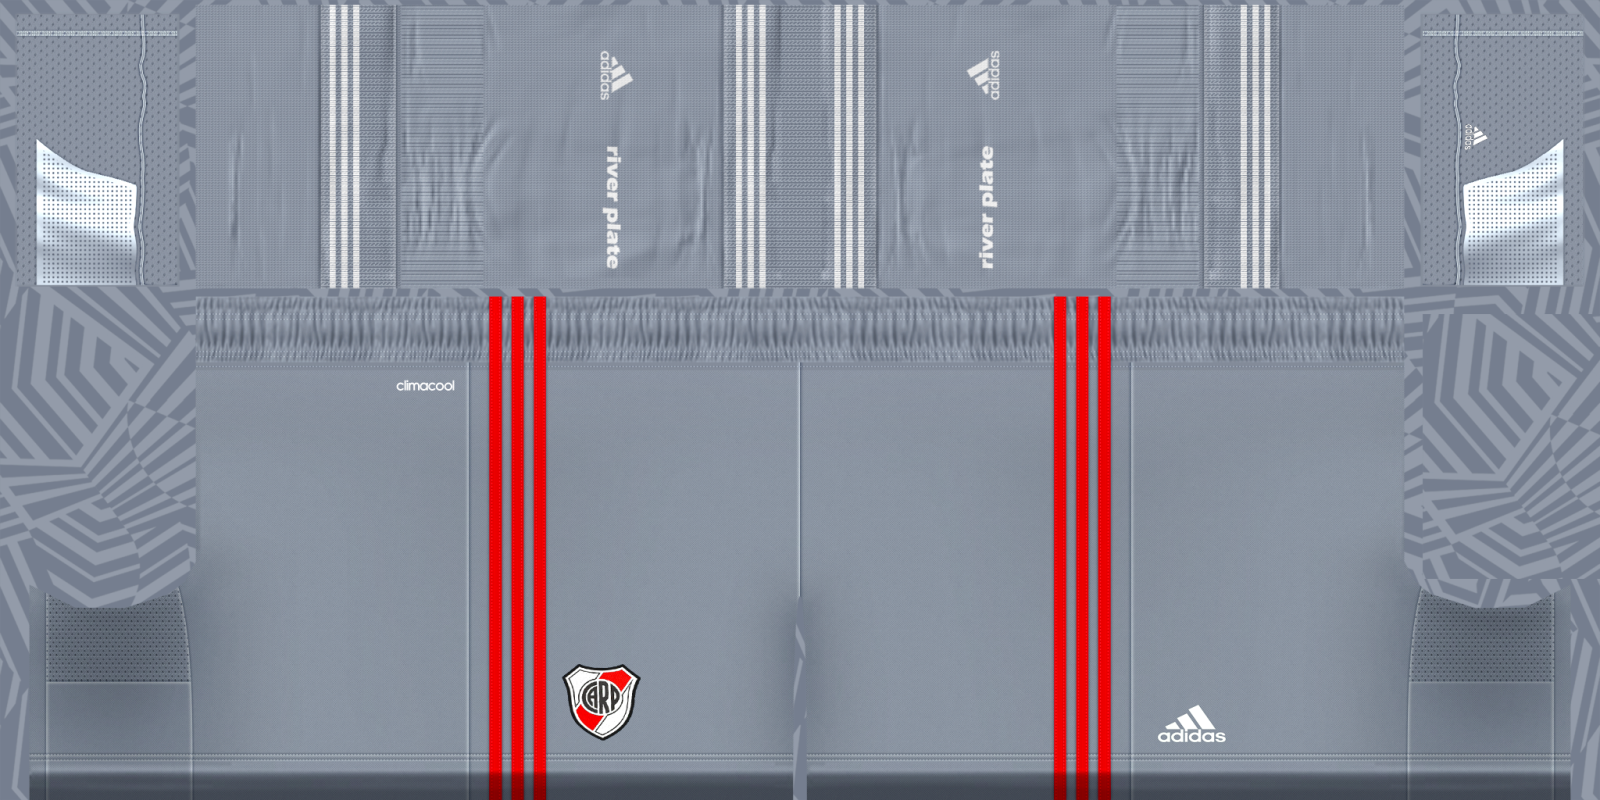 FULL CAMISETAS DE RIVER 2016 (TODAS) 2rnvmsh